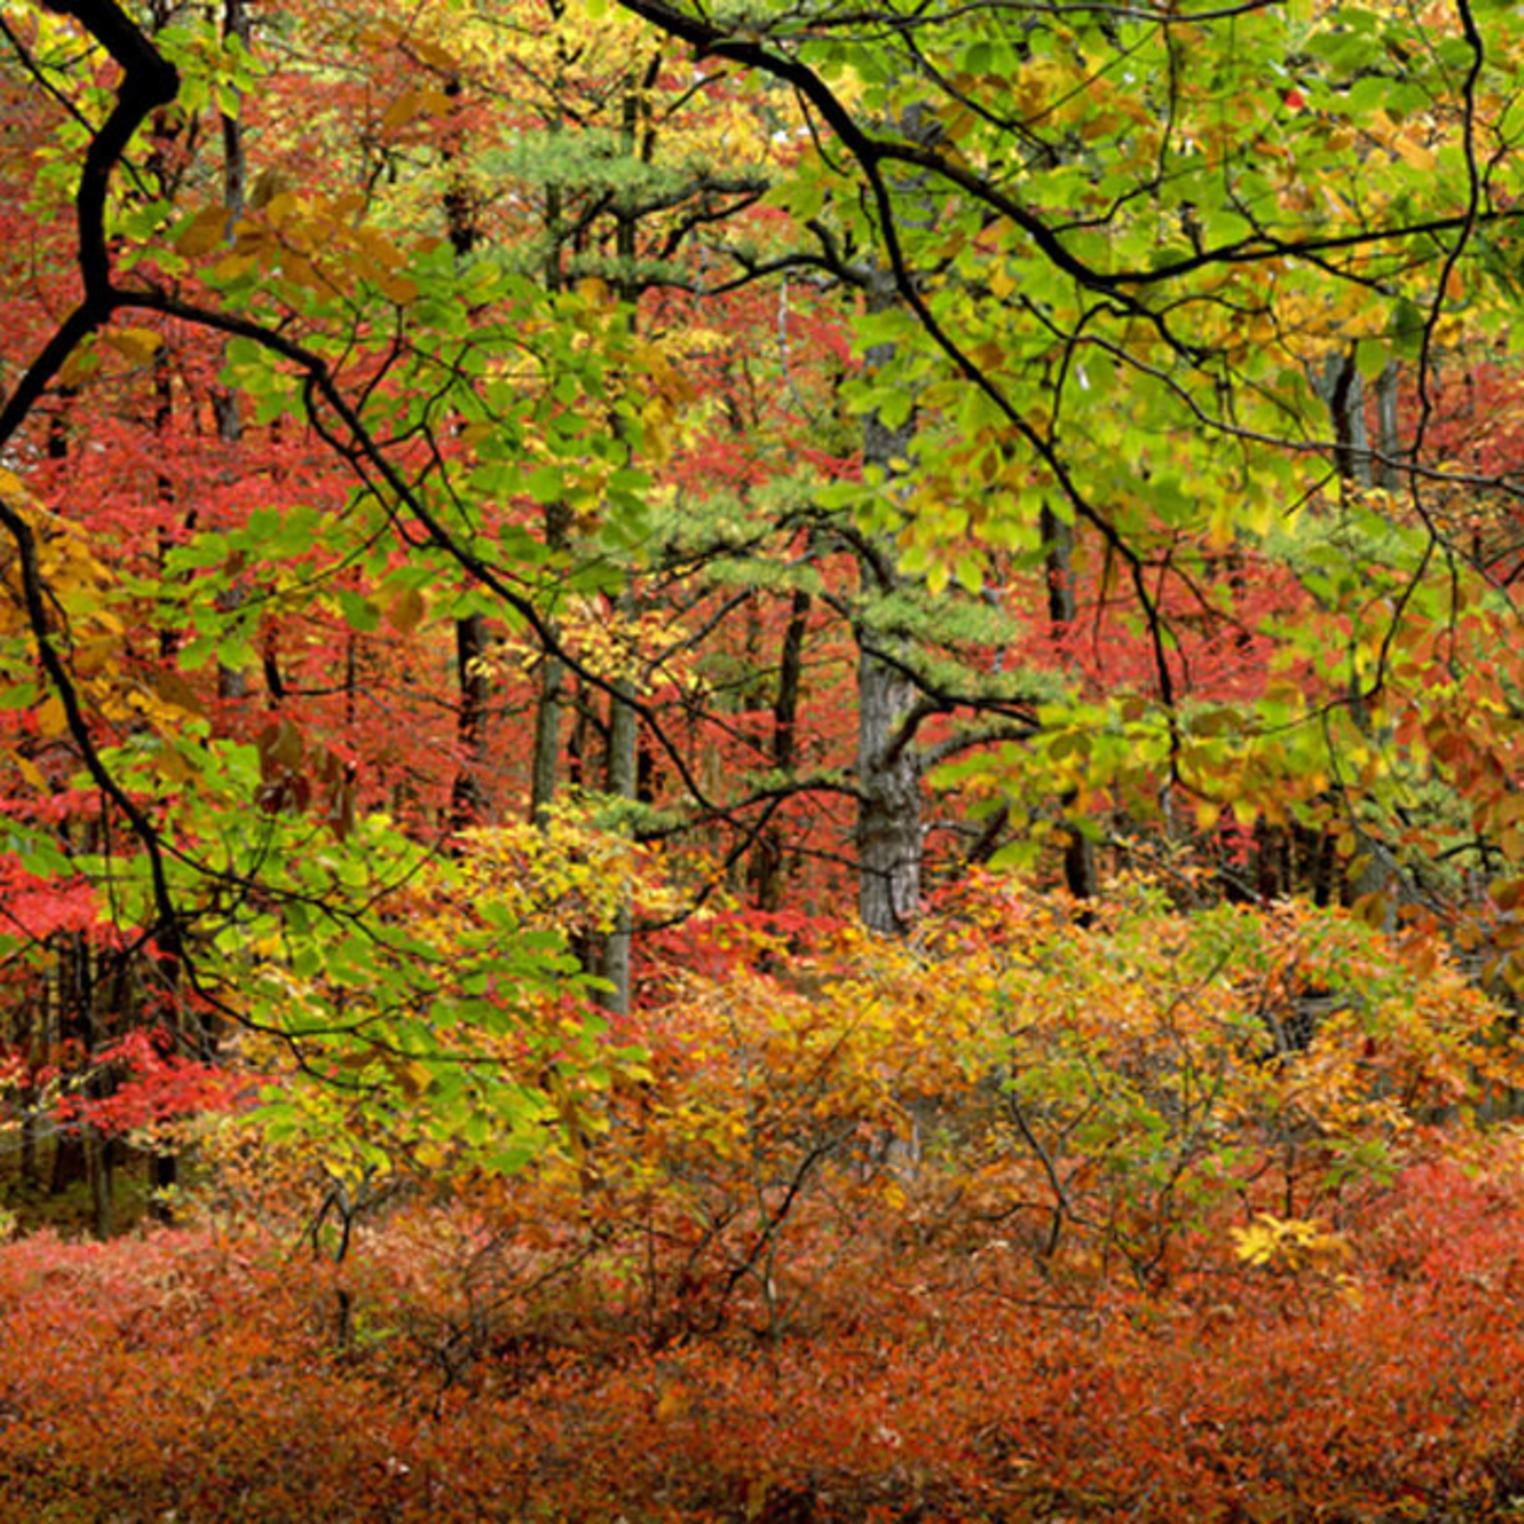 Autumn at Kings Gap Environmental Education Center